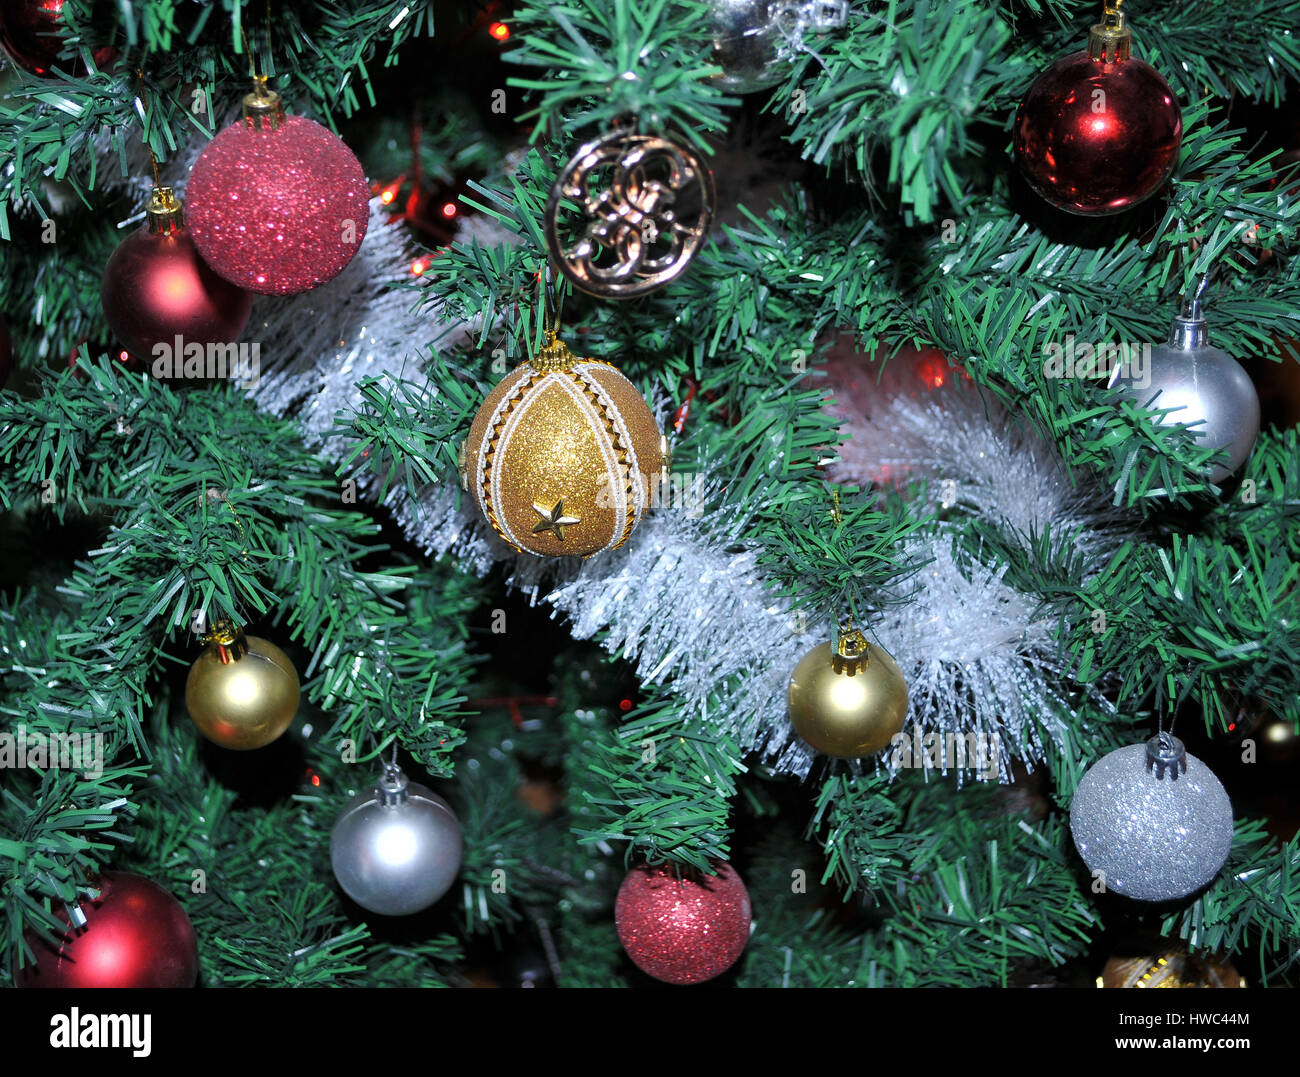 Colorful Christmas Tree Decorations.Christmas Tree Decoration With Various Colorful And